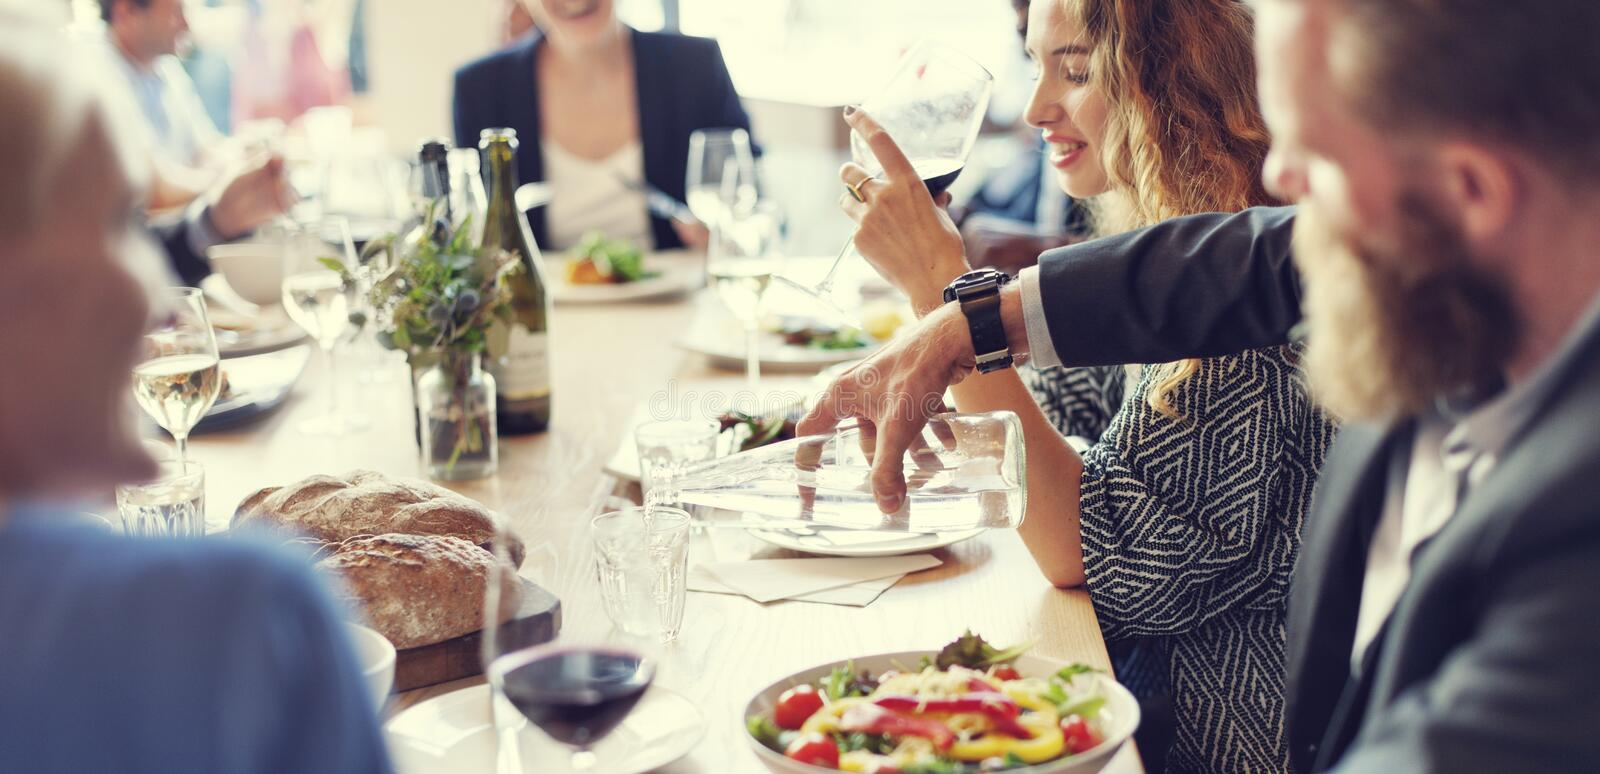 Meeting Eating Discussion Cuisine Party royalty free stock photography